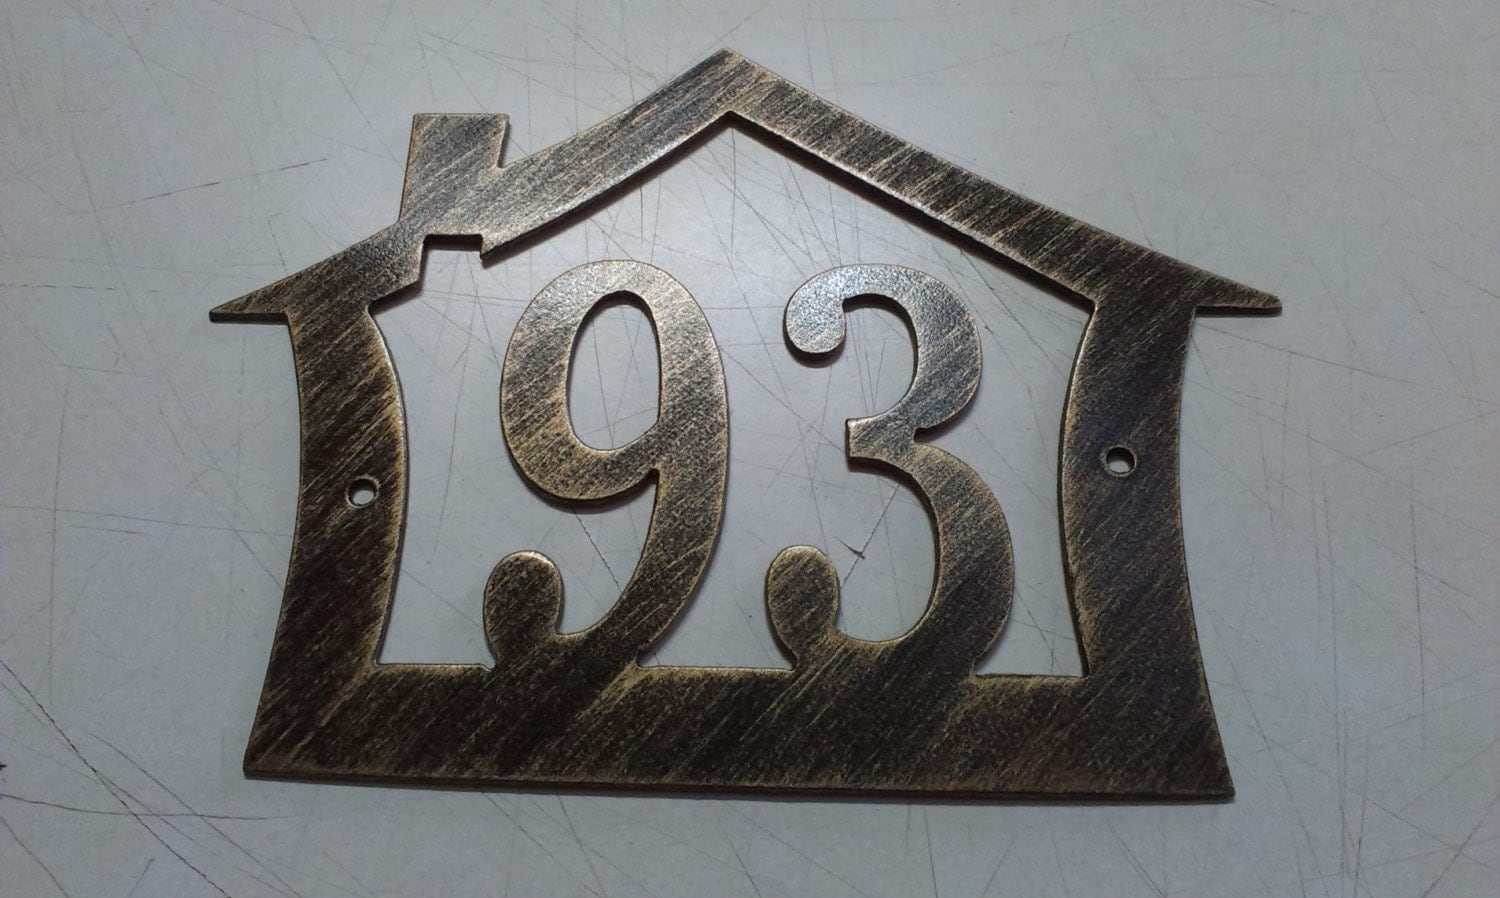 house number address sign house design wall decor metal art. Black Bedroom Furniture Sets. Home Design Ideas